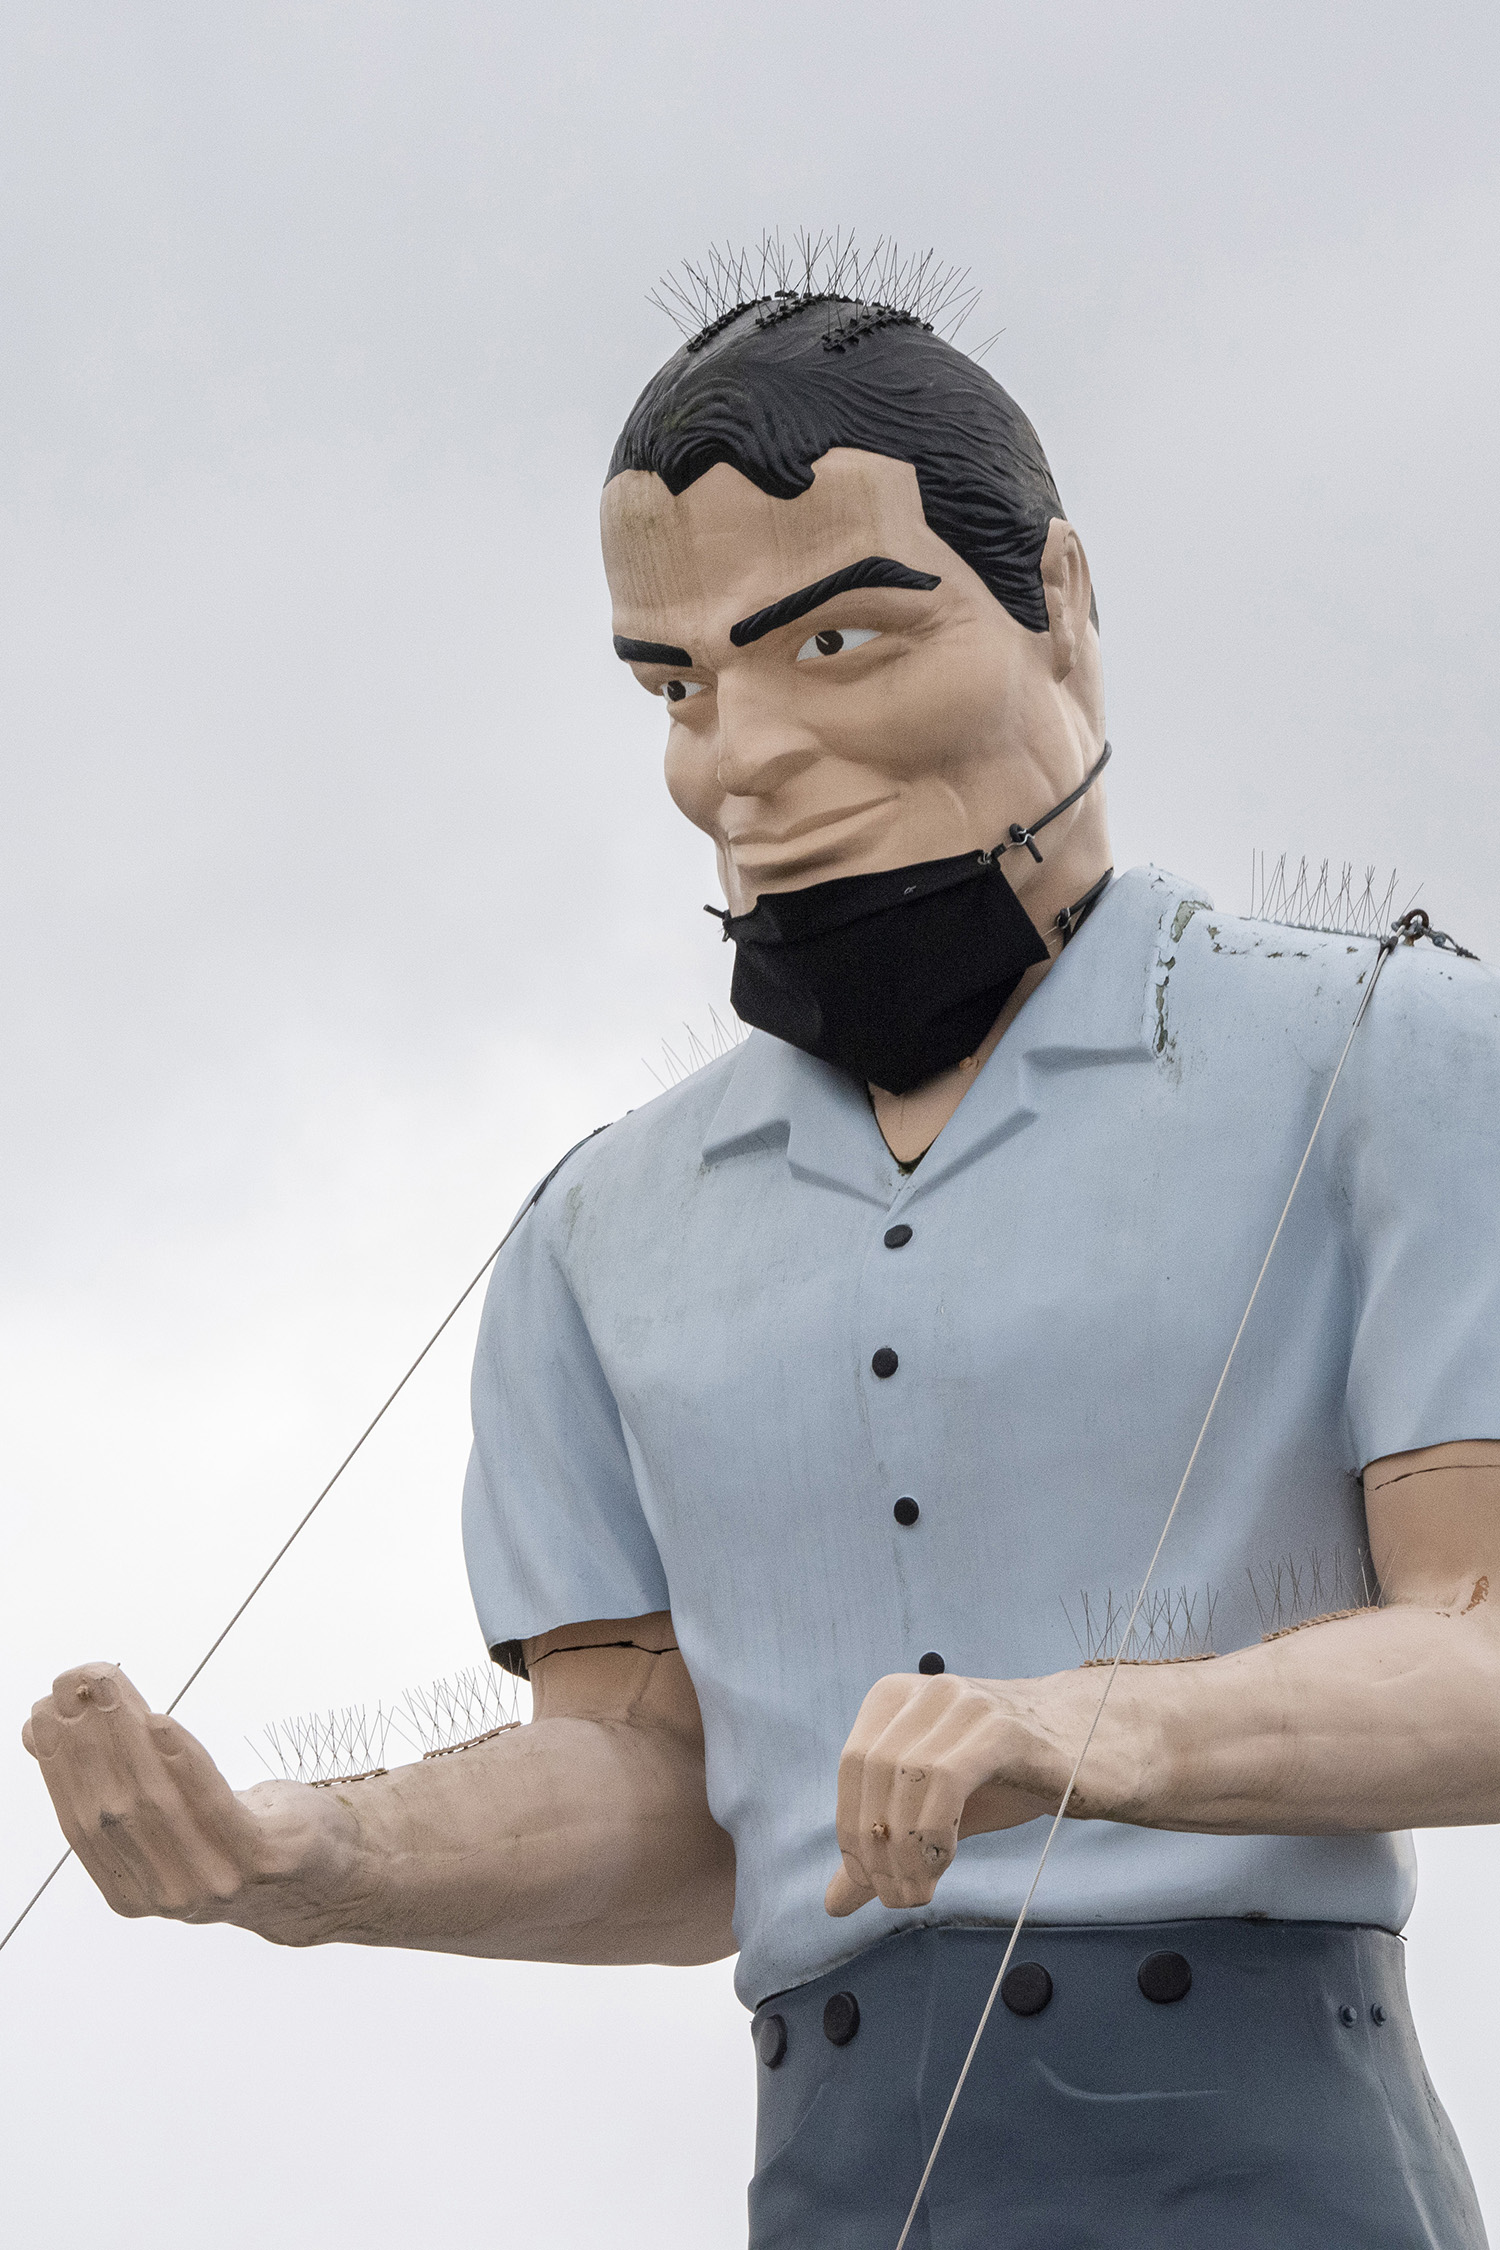 According to Roadside America, a detailed history of the Muffler Man is somewhat fuzzy, but most historians claim the fiberglass statues were originally created by International Fiberglass Company for larger-than-life, roadside advertising. (Rachael Jones / Seattle Refined)